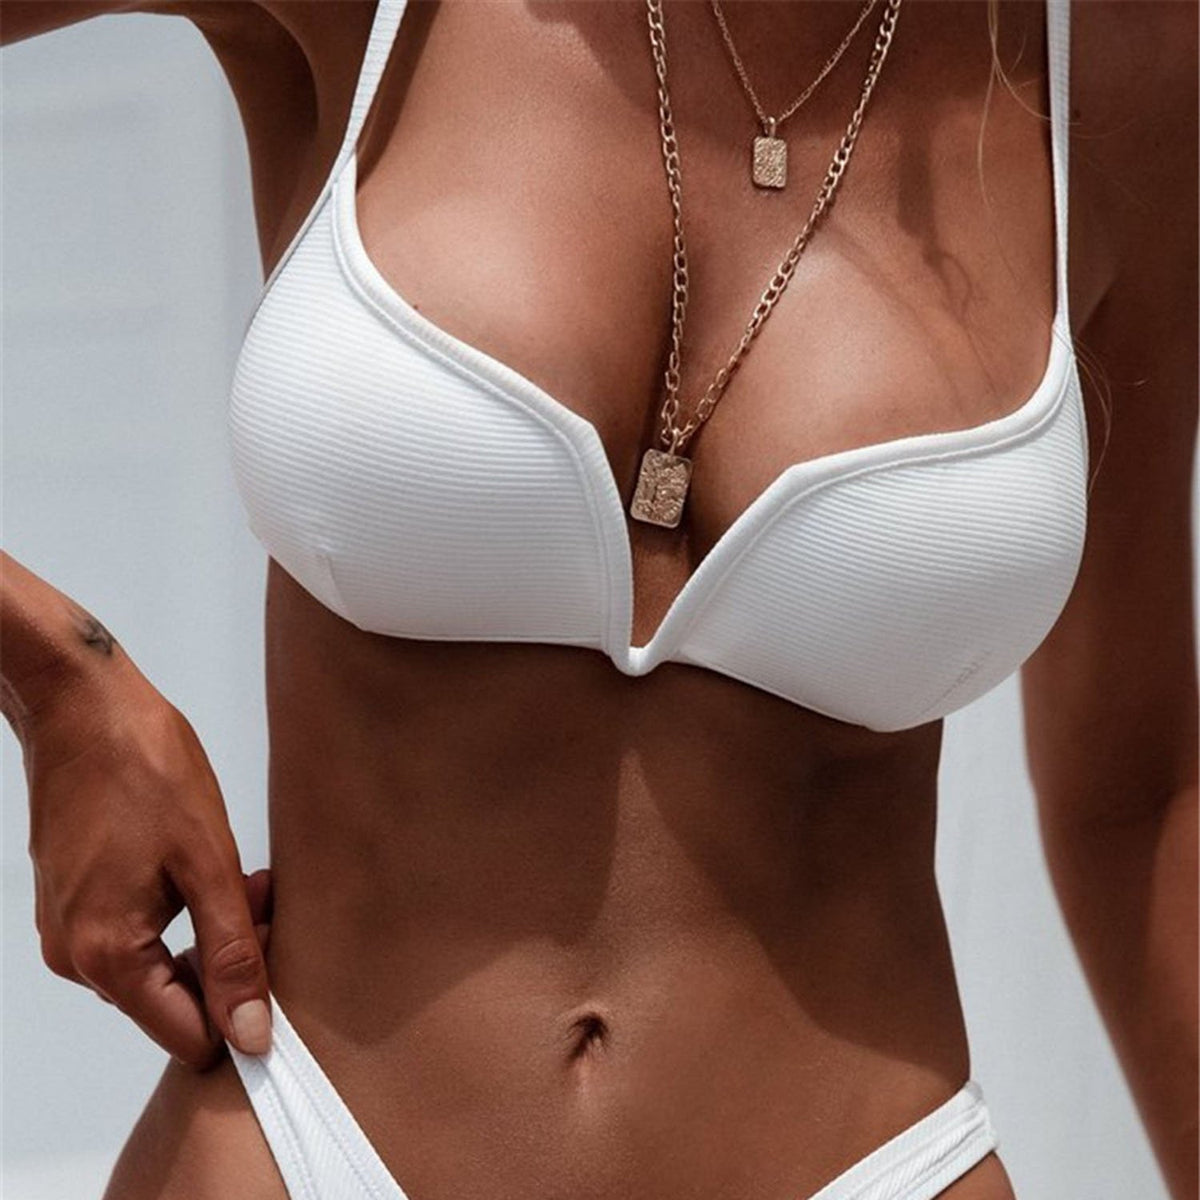 Ribbed Deep V Crop Top High Rise Bikini - worthtryit.com